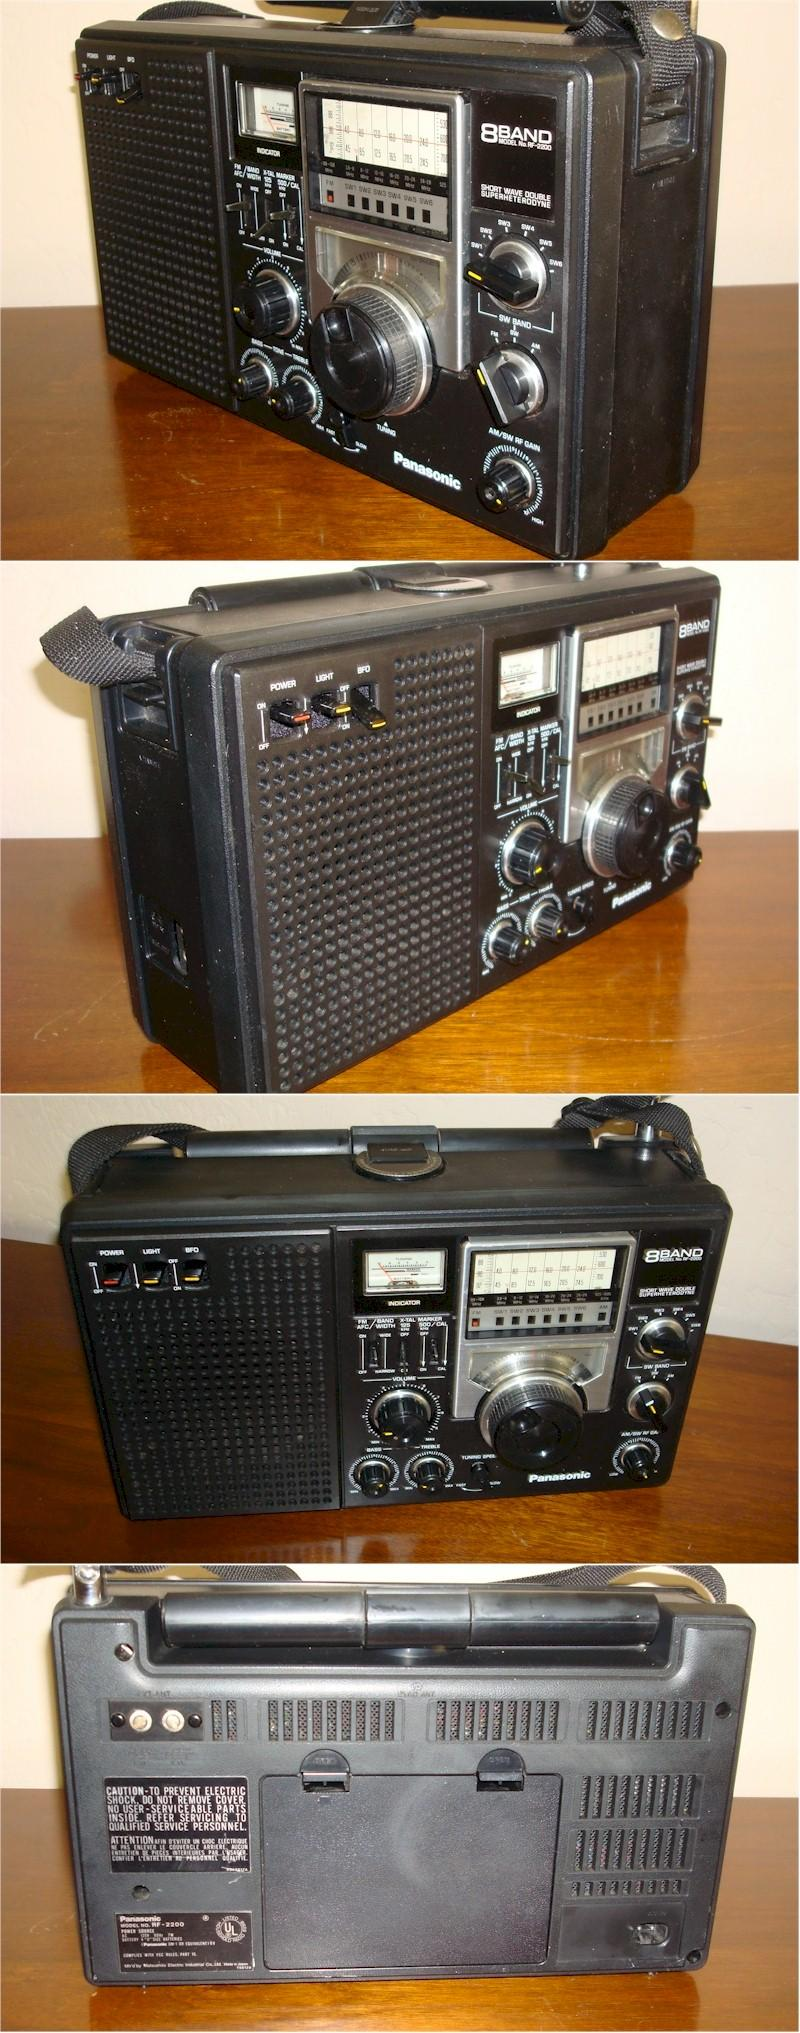 Panasonic RF-2200 Multi-Band Portable